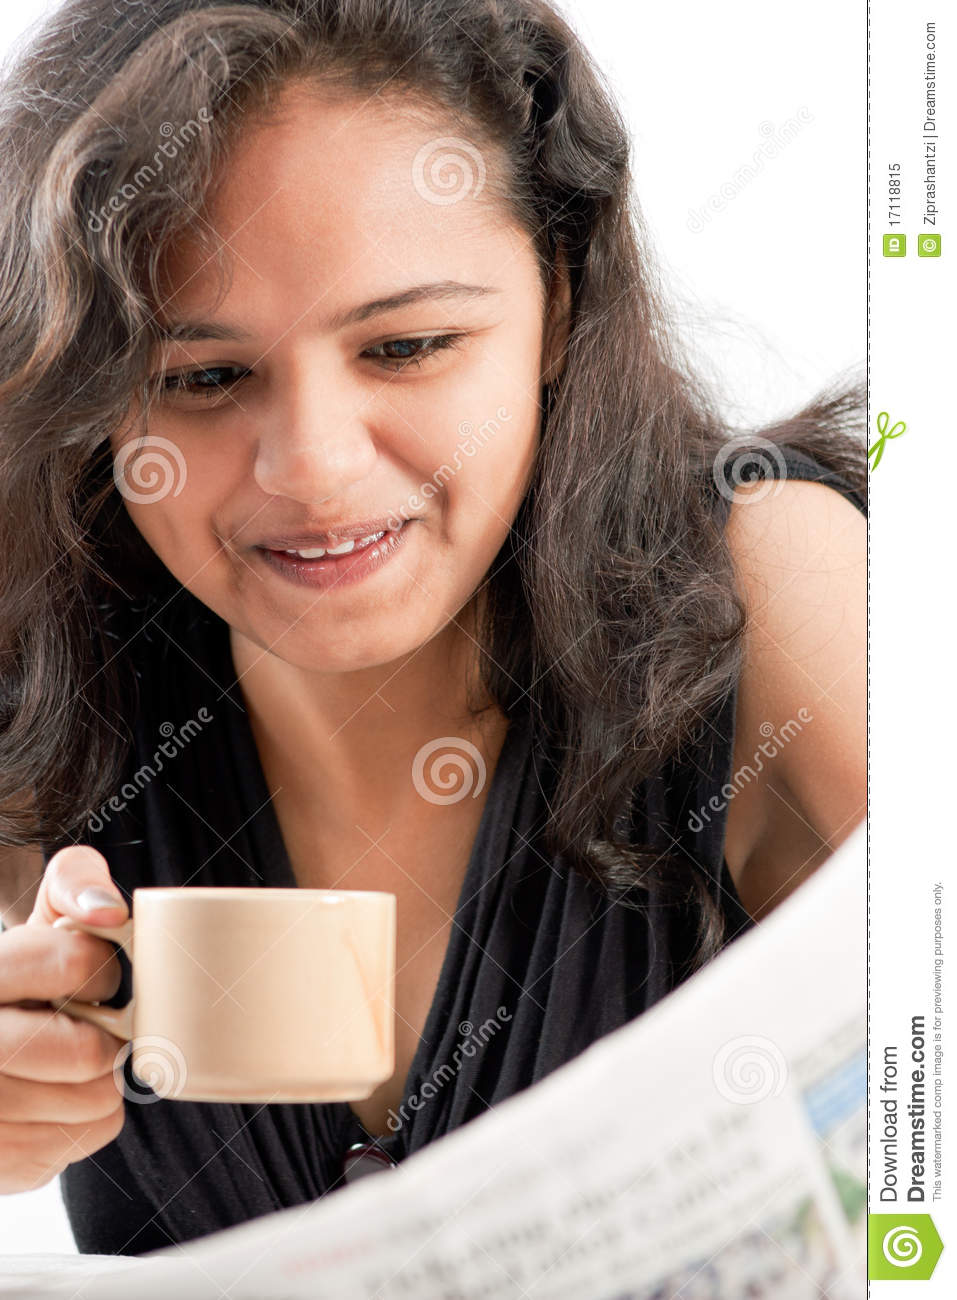 Smilling indian teen reading newspaper with coffee - smilling-indian-teen-reading-newspaper-coffee-17118815